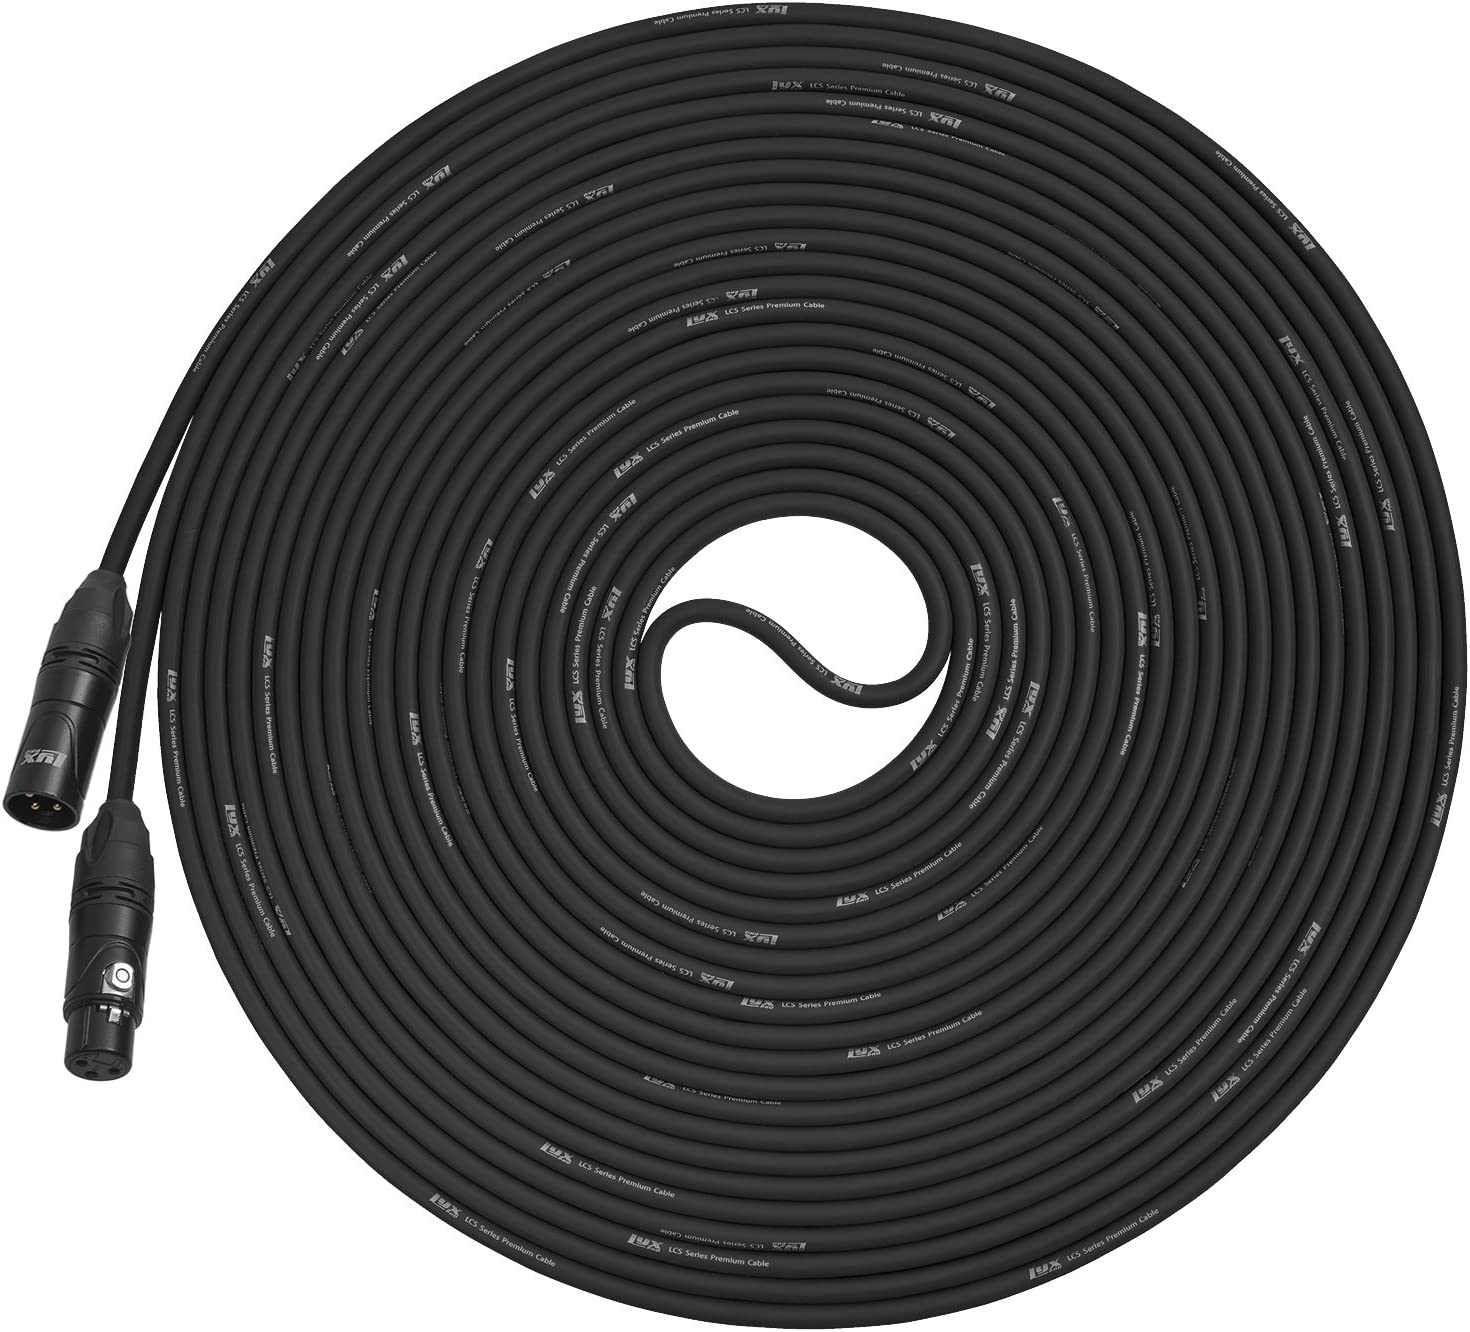 LyxPro Quad Series 25 ft XLR 4-Conductor Star Quad Balanced Microphone Cable for High End Quality and Sound Clarity Extreme Low Noise Black